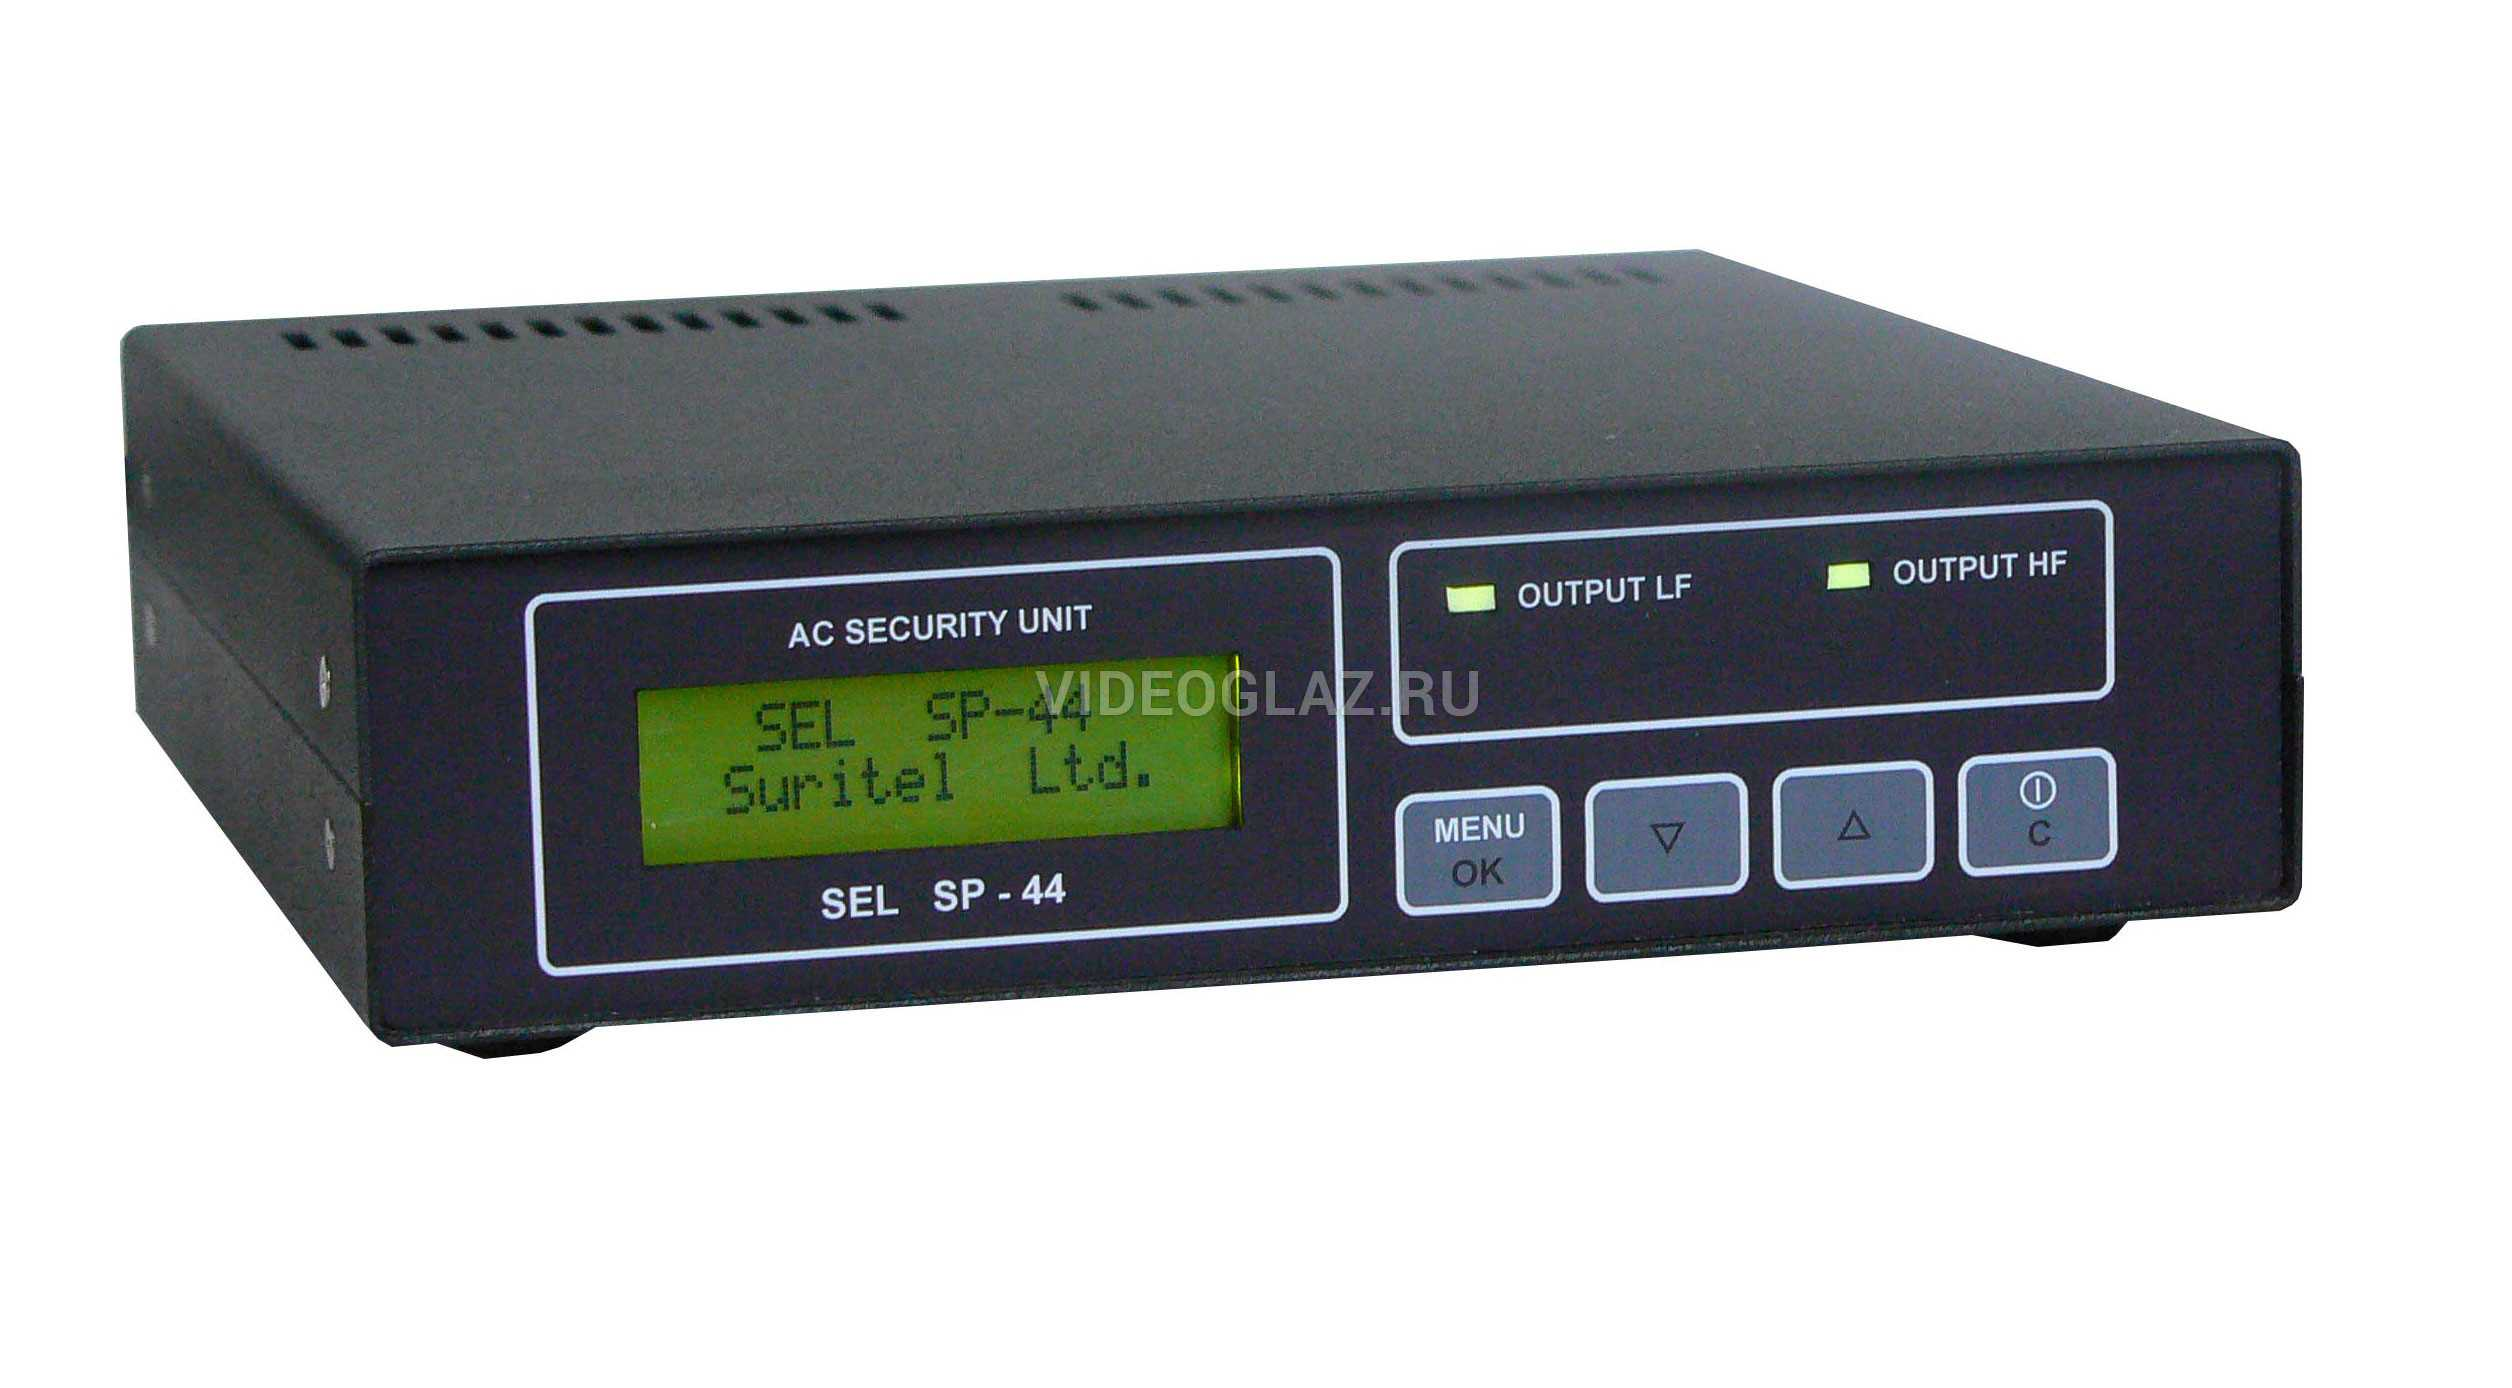 SEL SP-44